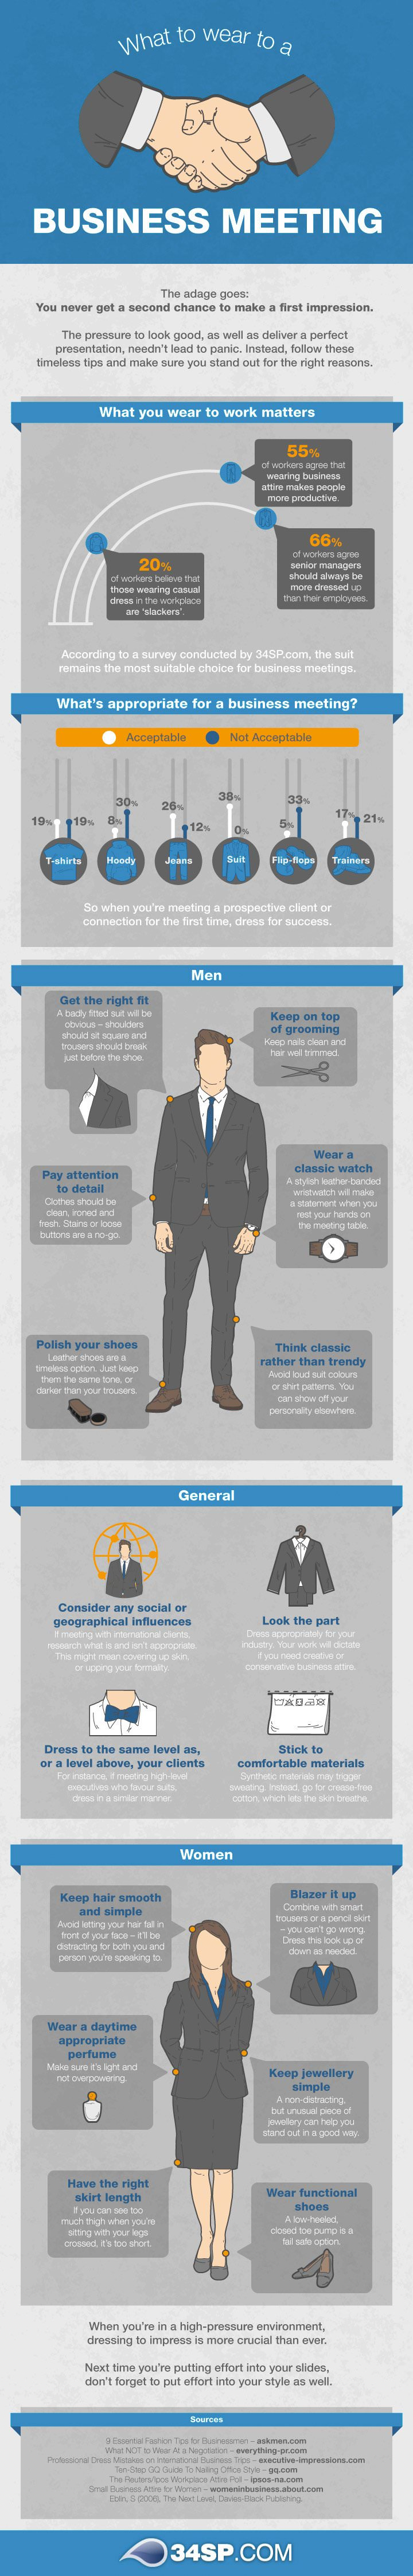 What to Wear to a Business Meeting